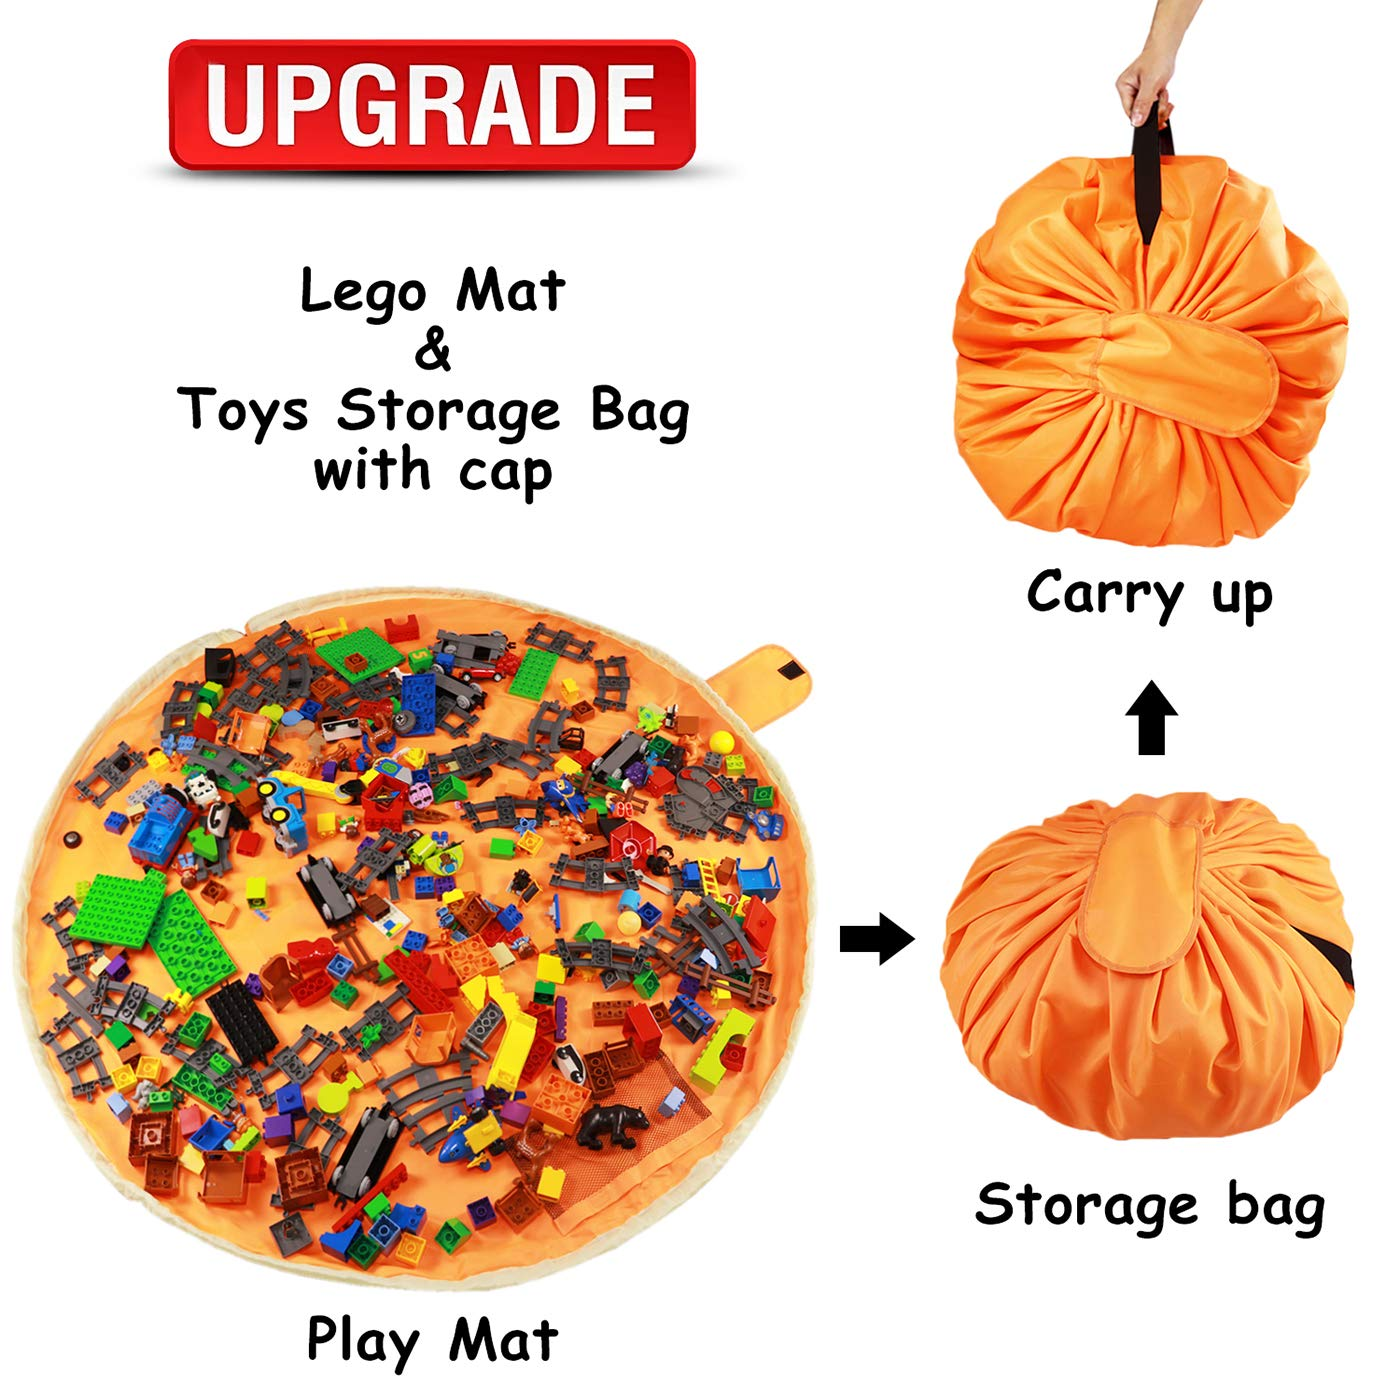 Lego Bag and Lego Toy Organizer Storage Bag Mat by Drawstring Lego Mat and Play Toy Mat Bag/Storage for Children – Lego Container Storage 60'' for Kids Storing Clean up Lego Toys with Cap (UPGRADE)